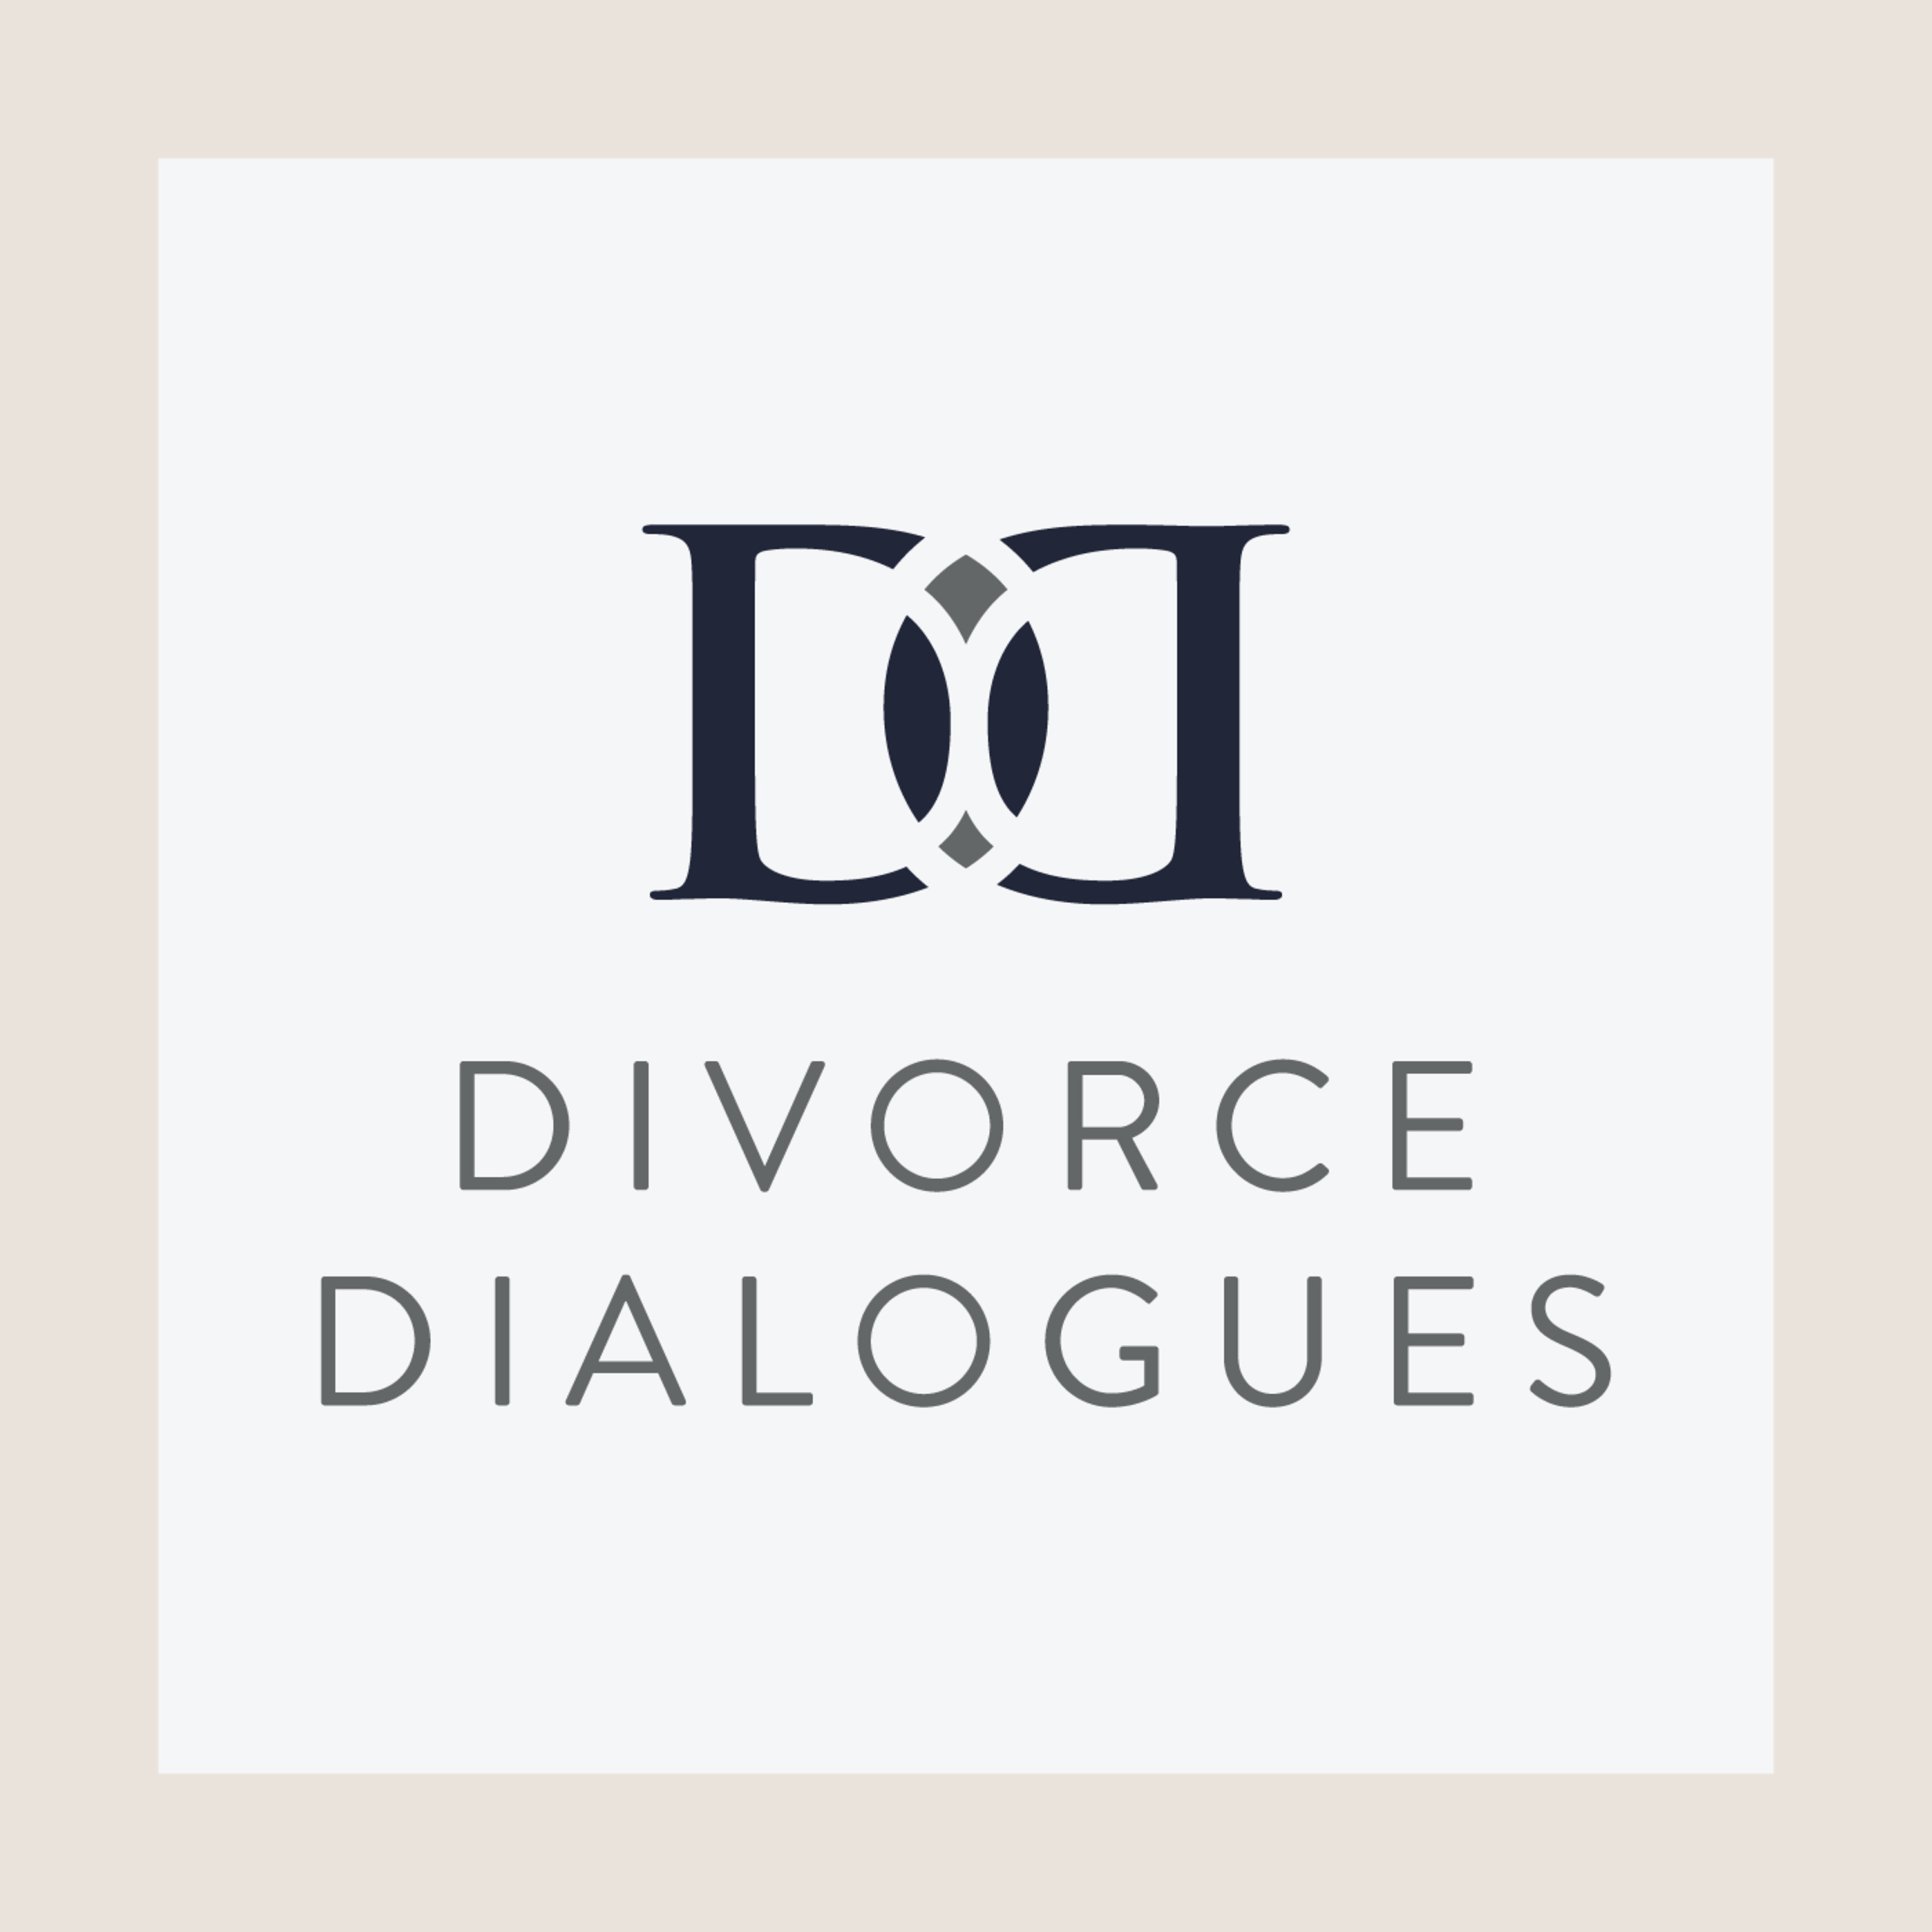 Divorce Dialogues - Dating After Divorce with Dr. Alexandra Solomon